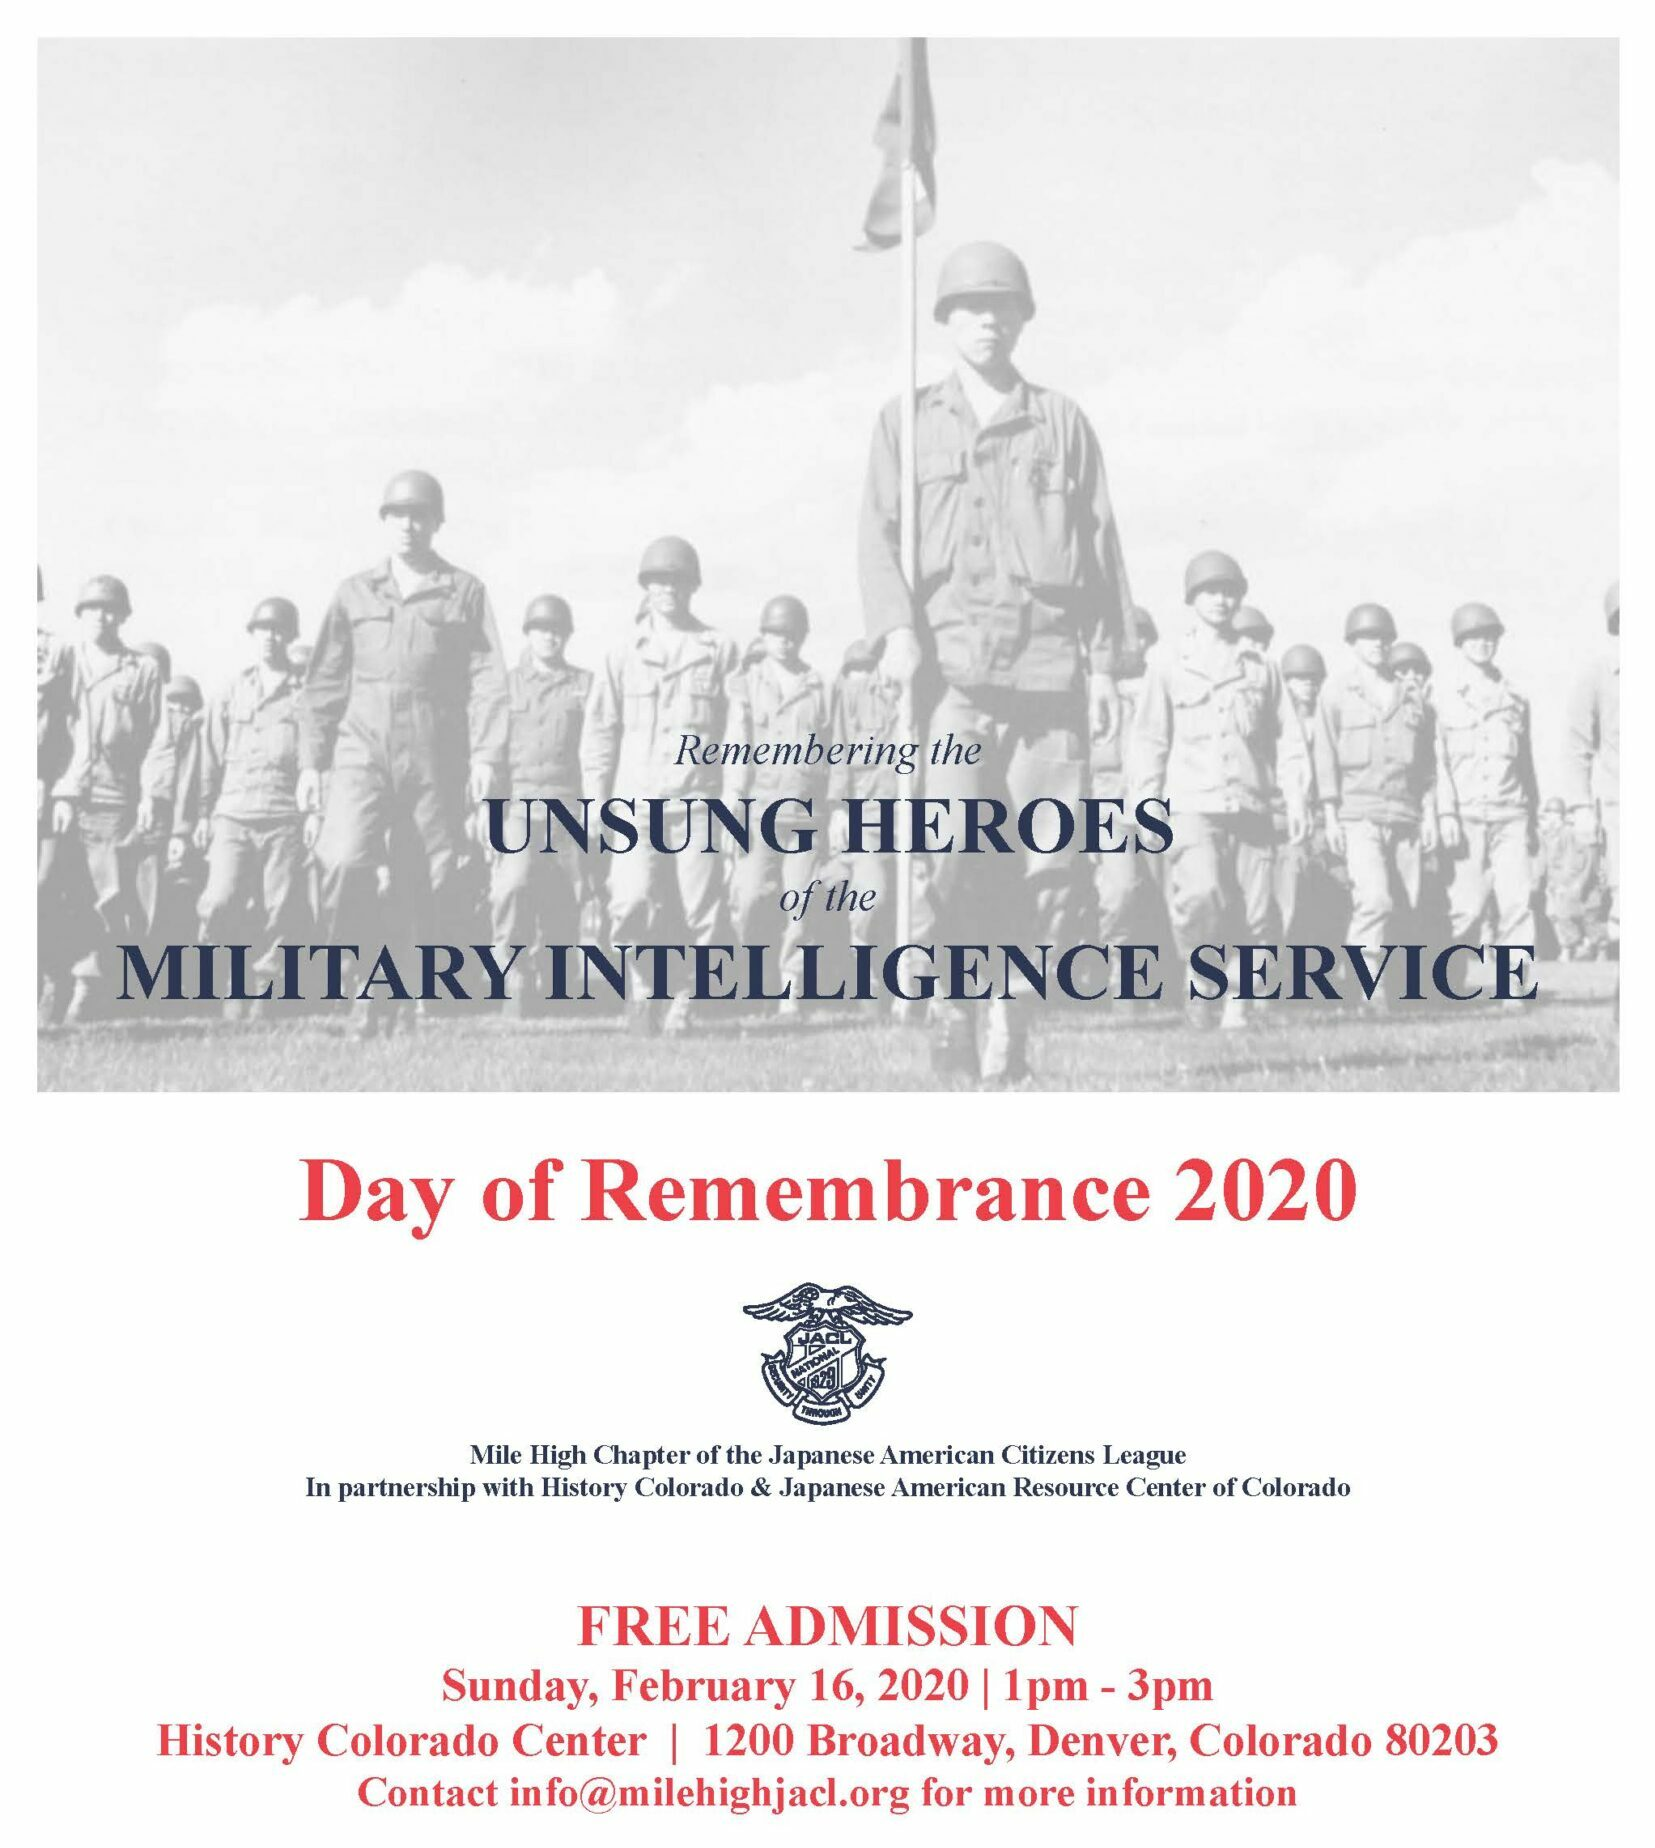 Day of Remembrance 2020 Poster